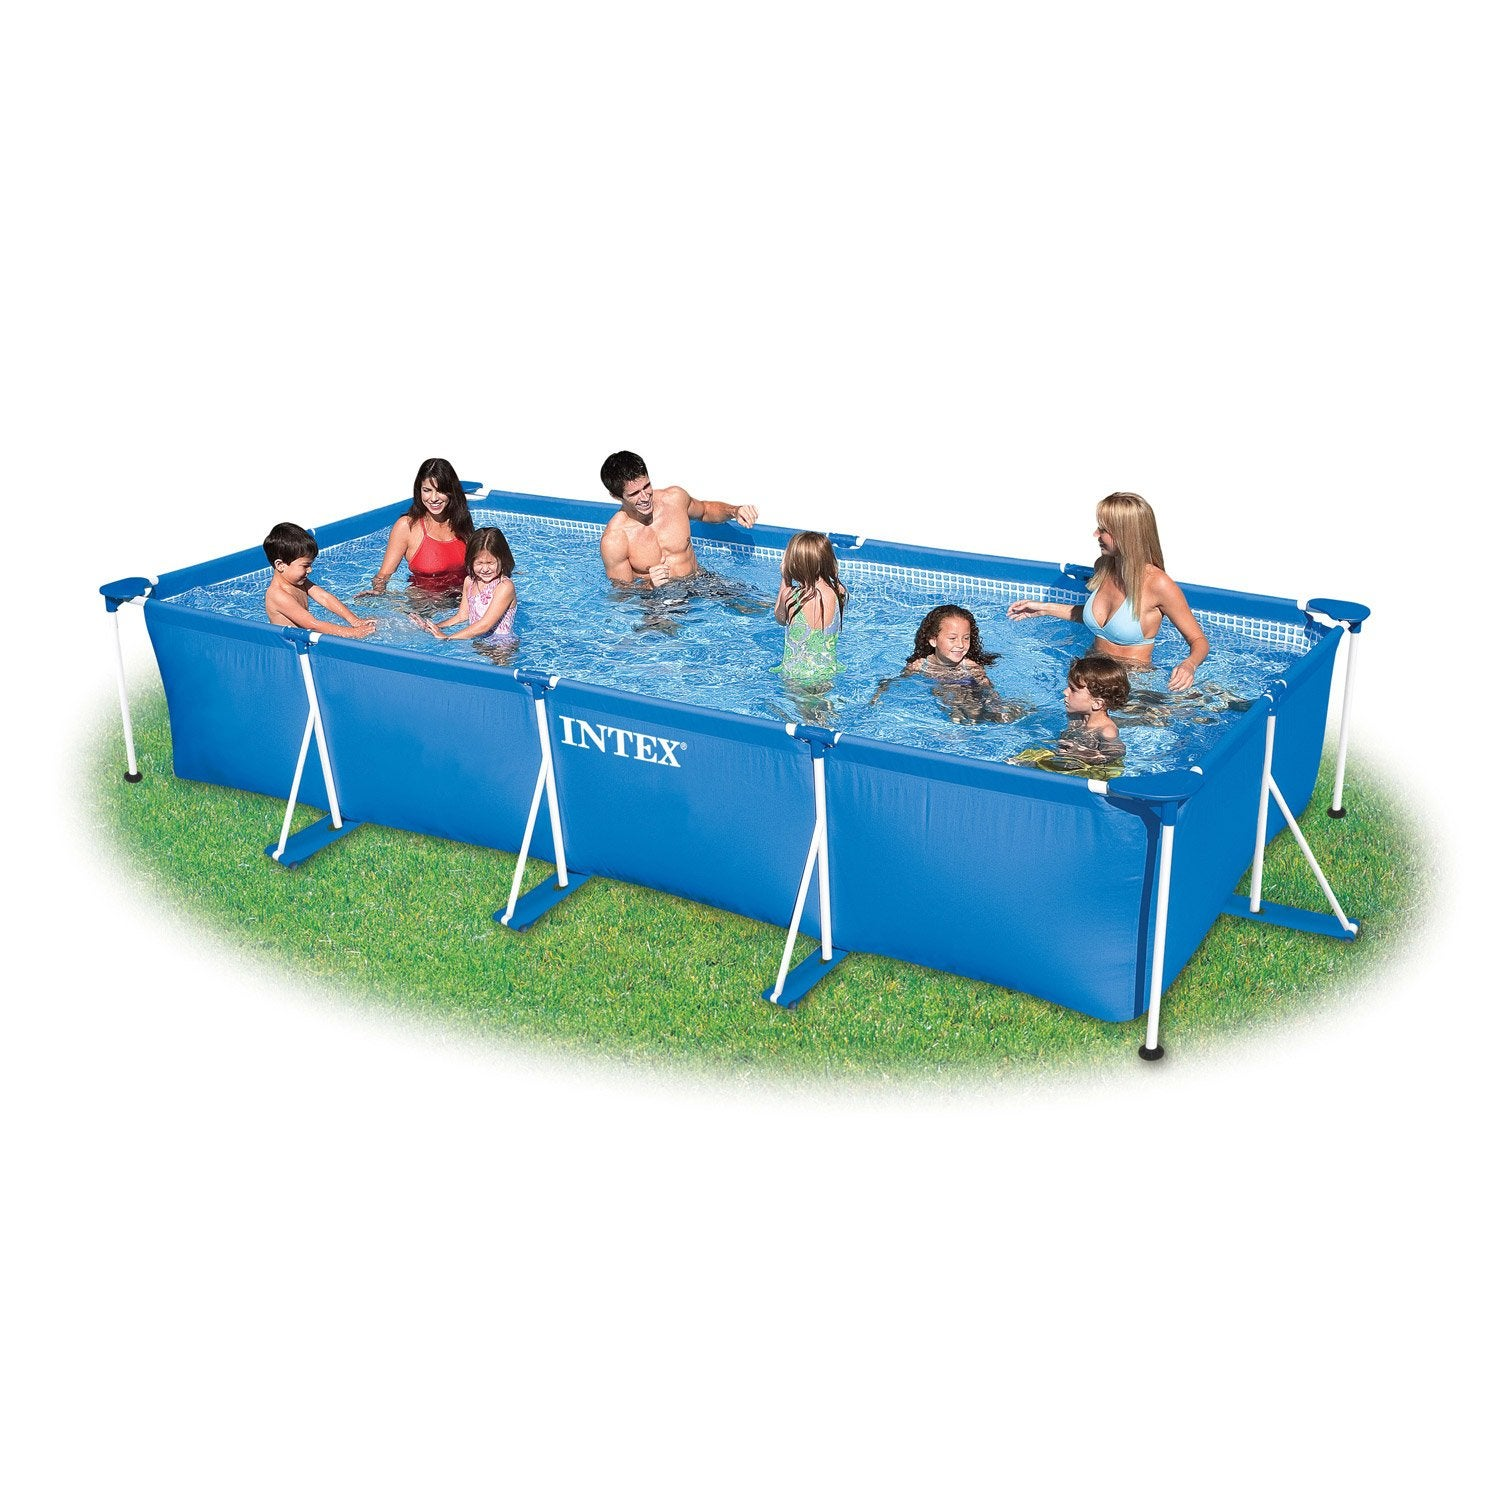 Piscine hors sol autoportante tubulaire intex l x l for Piscine hors sol xxl